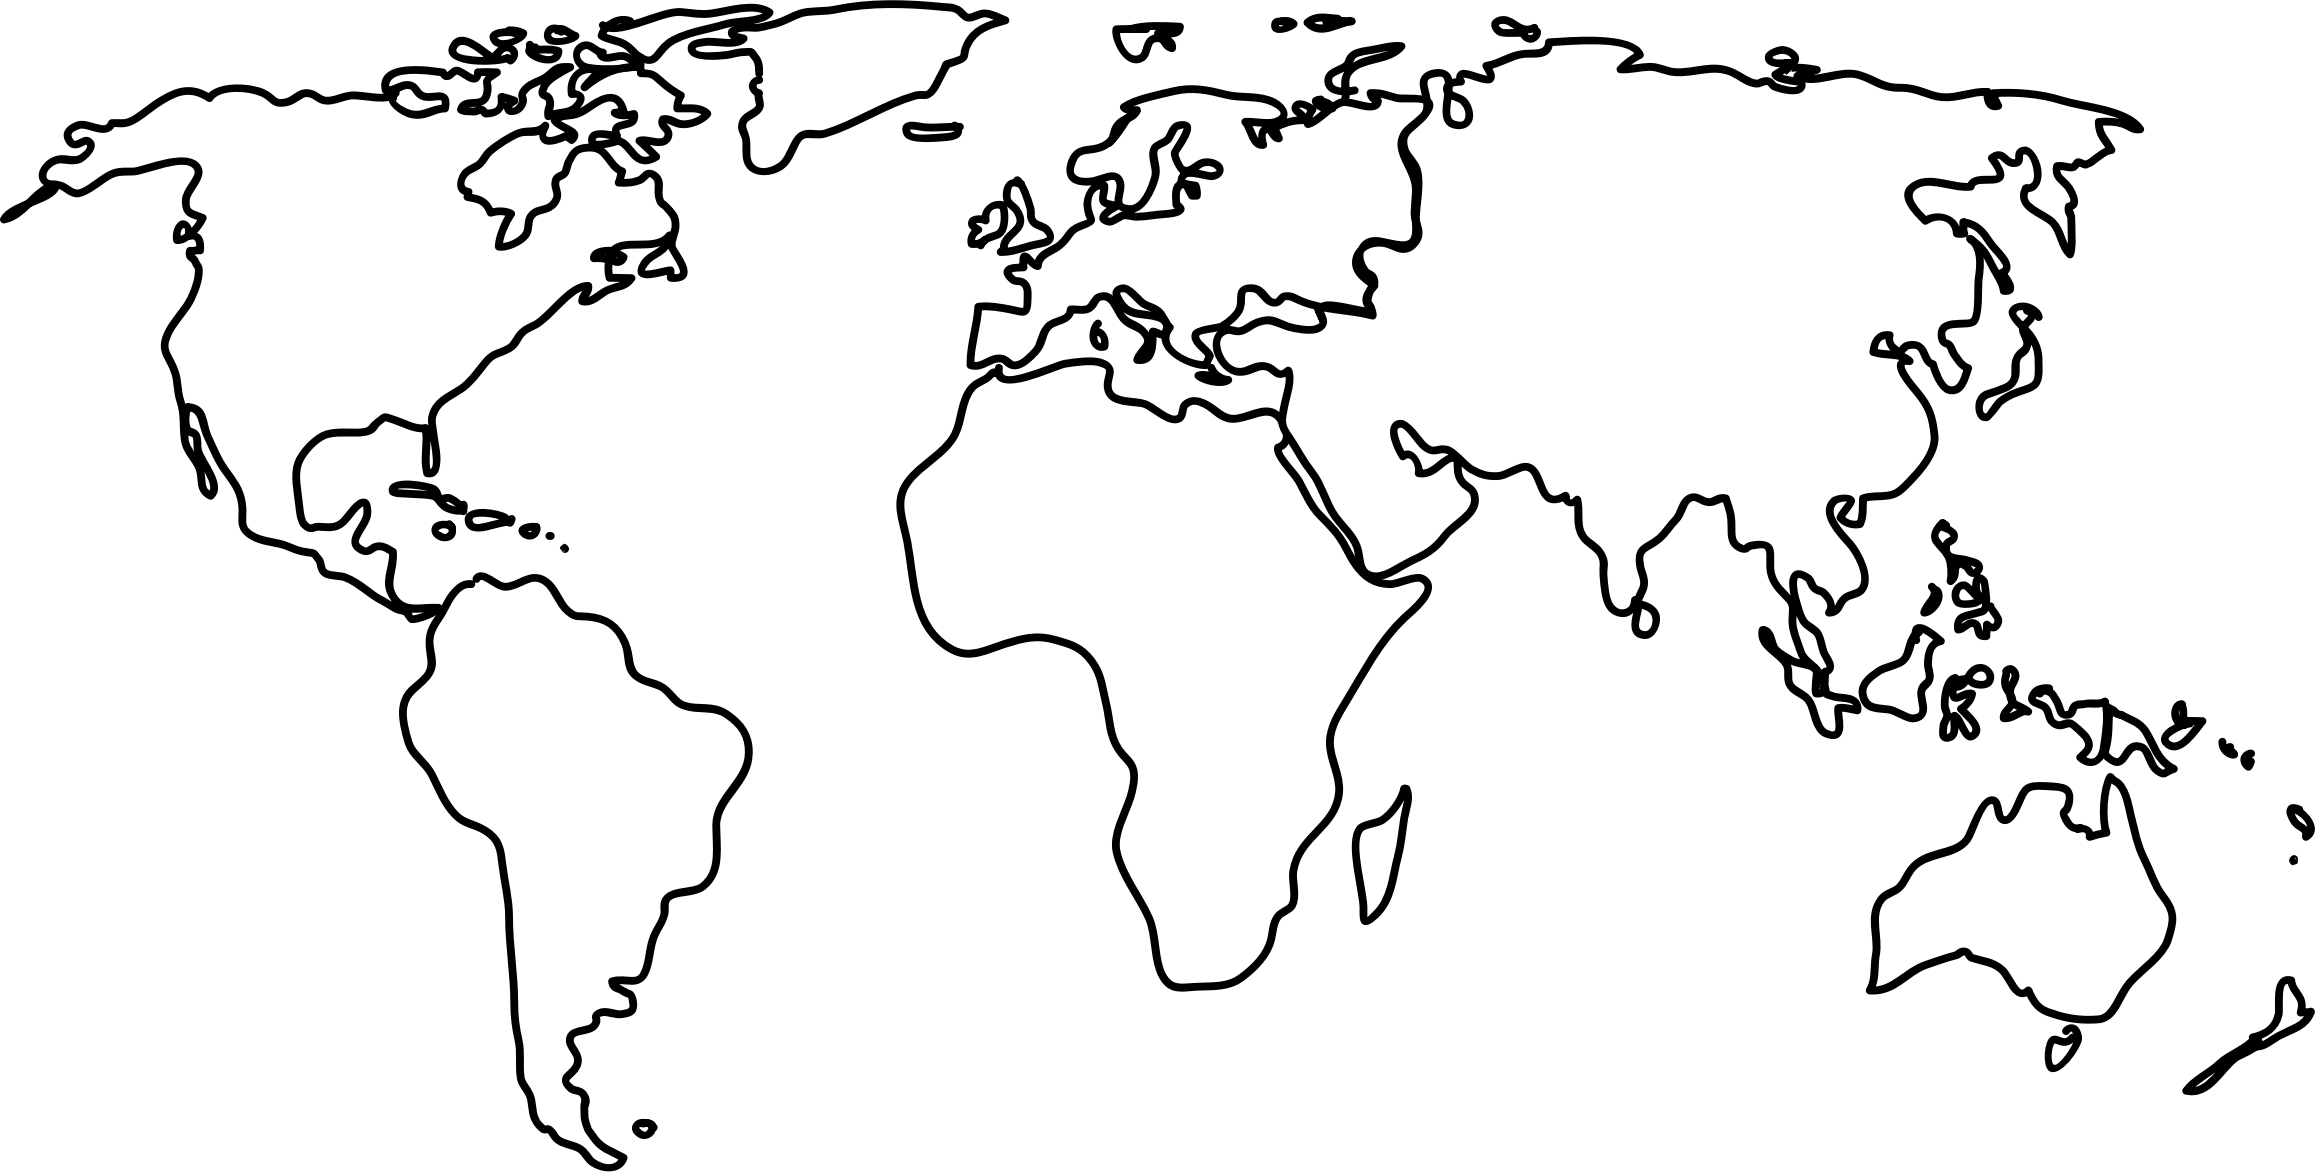 World Map Outline Png Clipart - World Map